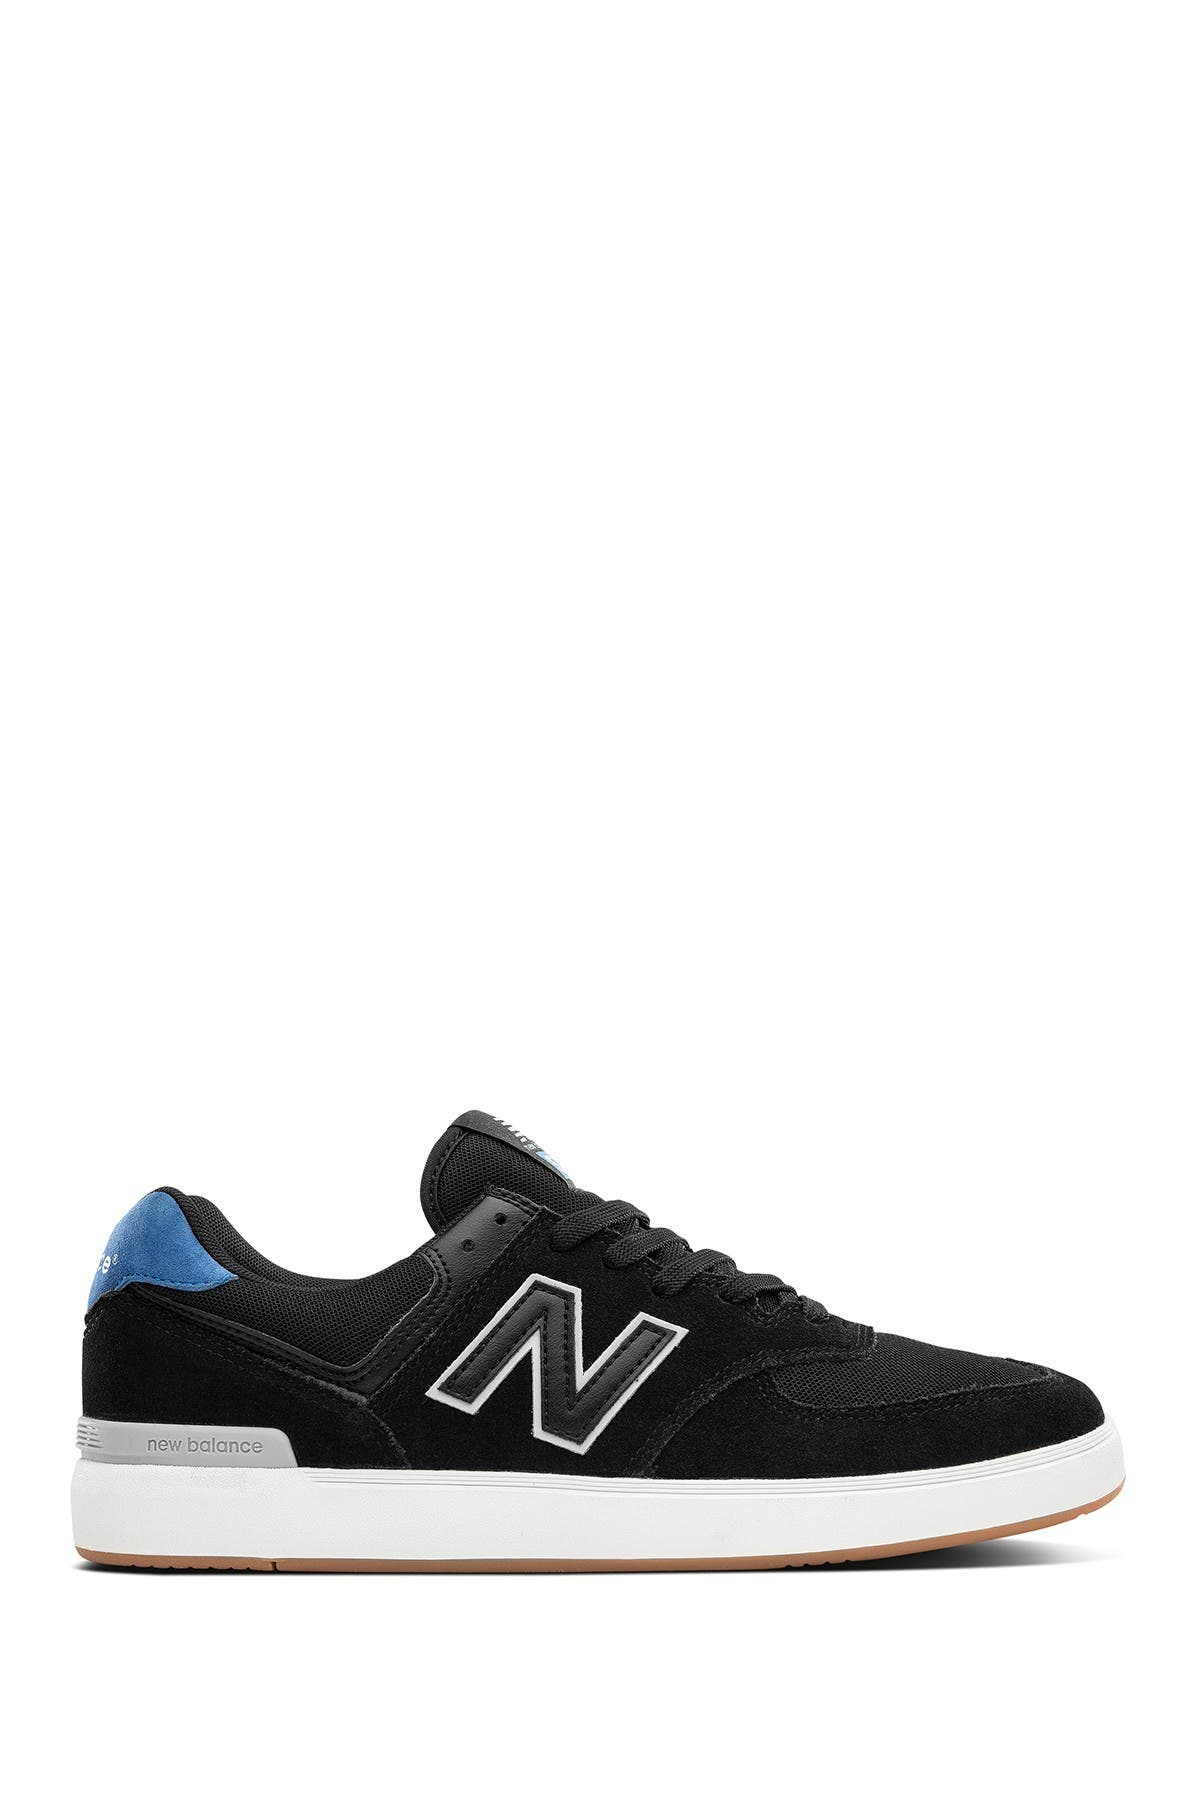 Image of New Balance 574 Skate Shoe